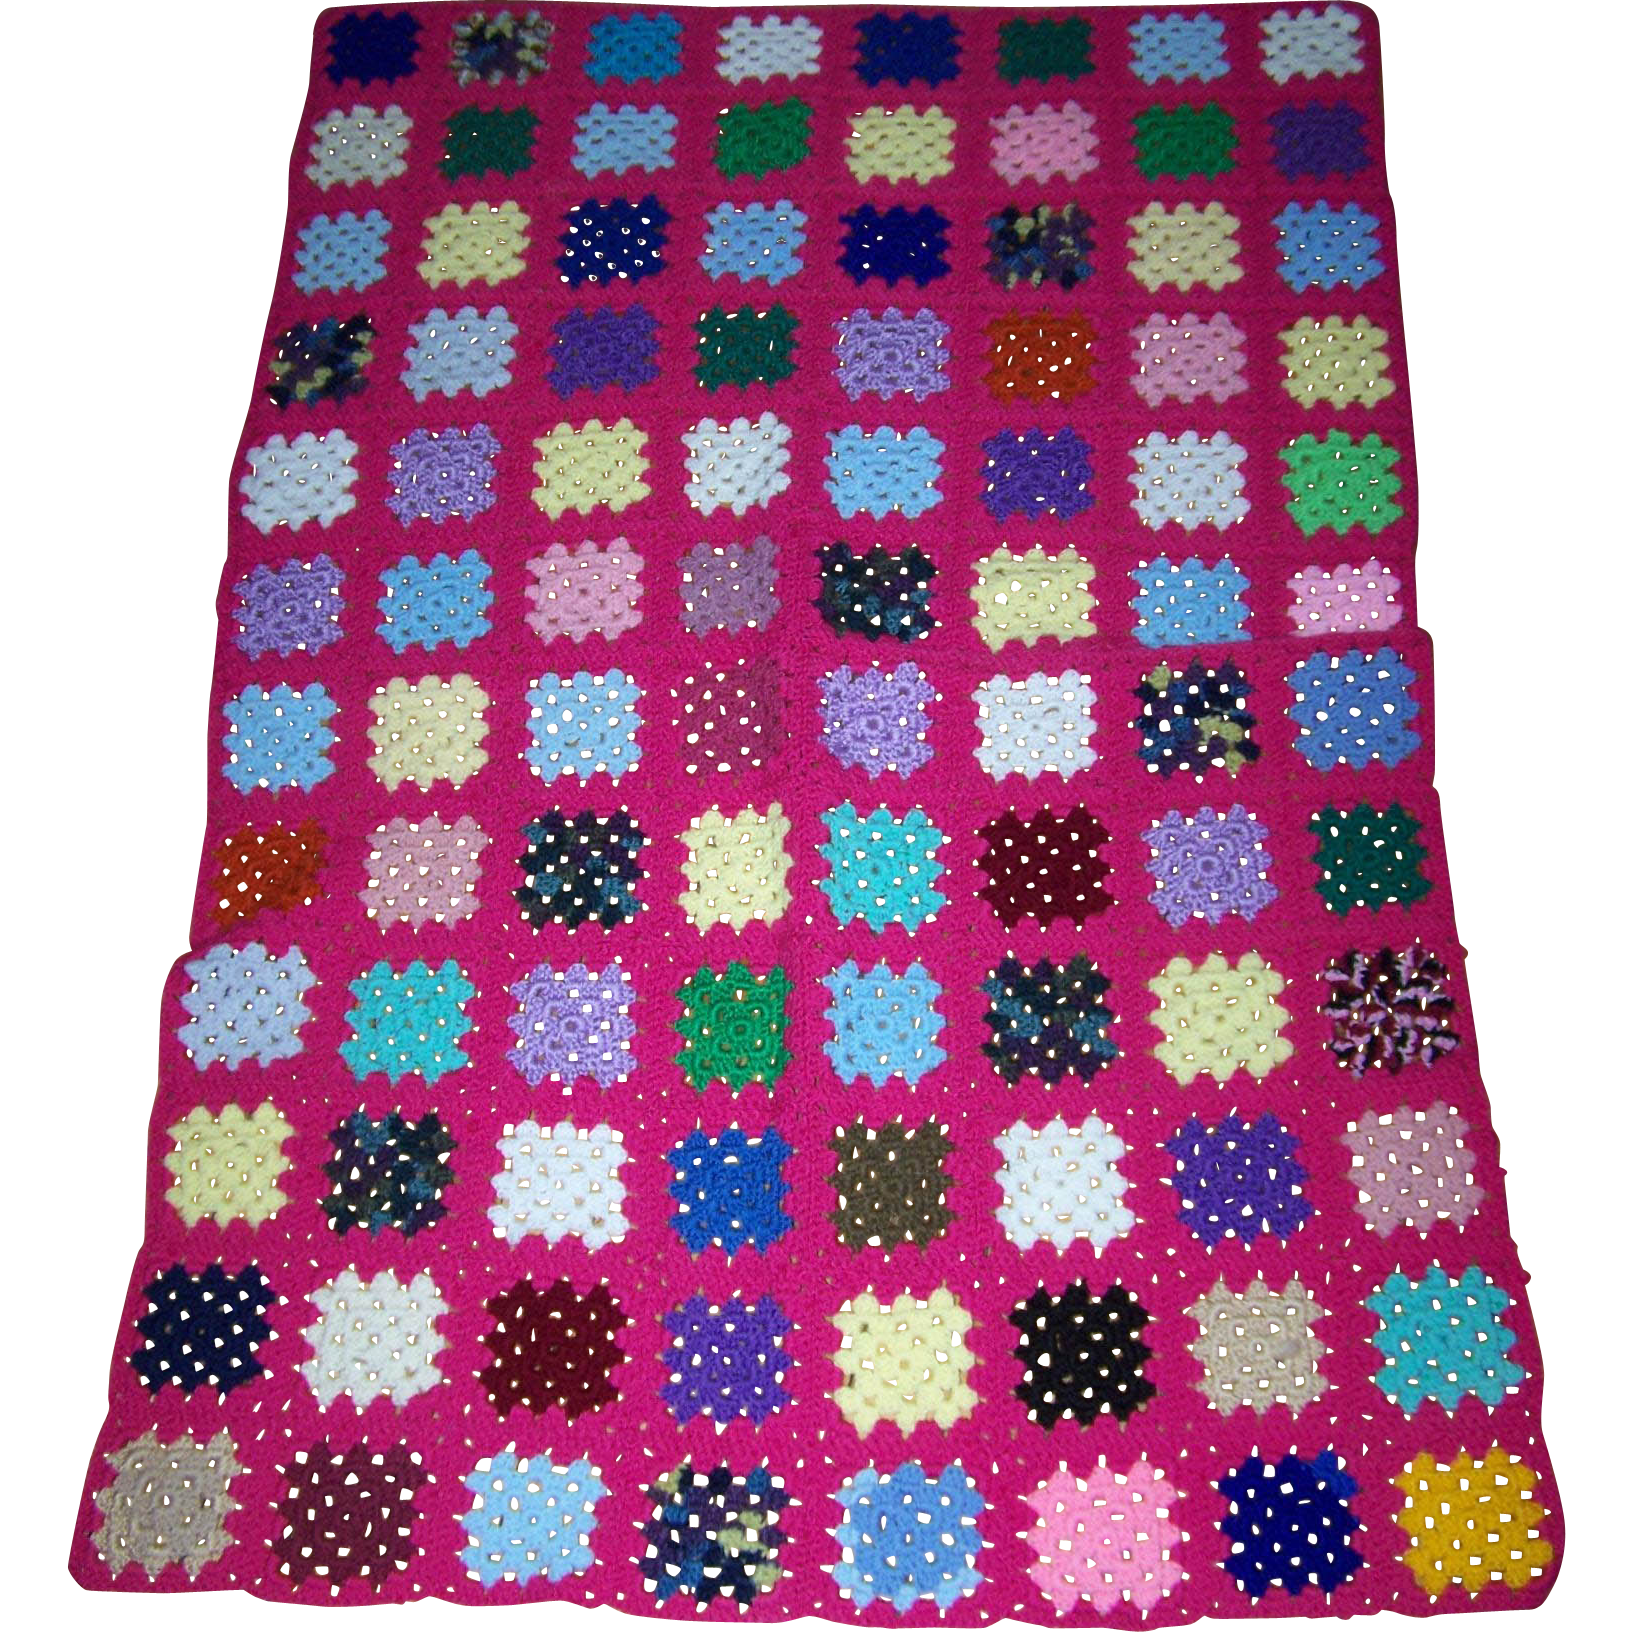 A Pretty Hand Crochet Small Granny Square Style Blanket